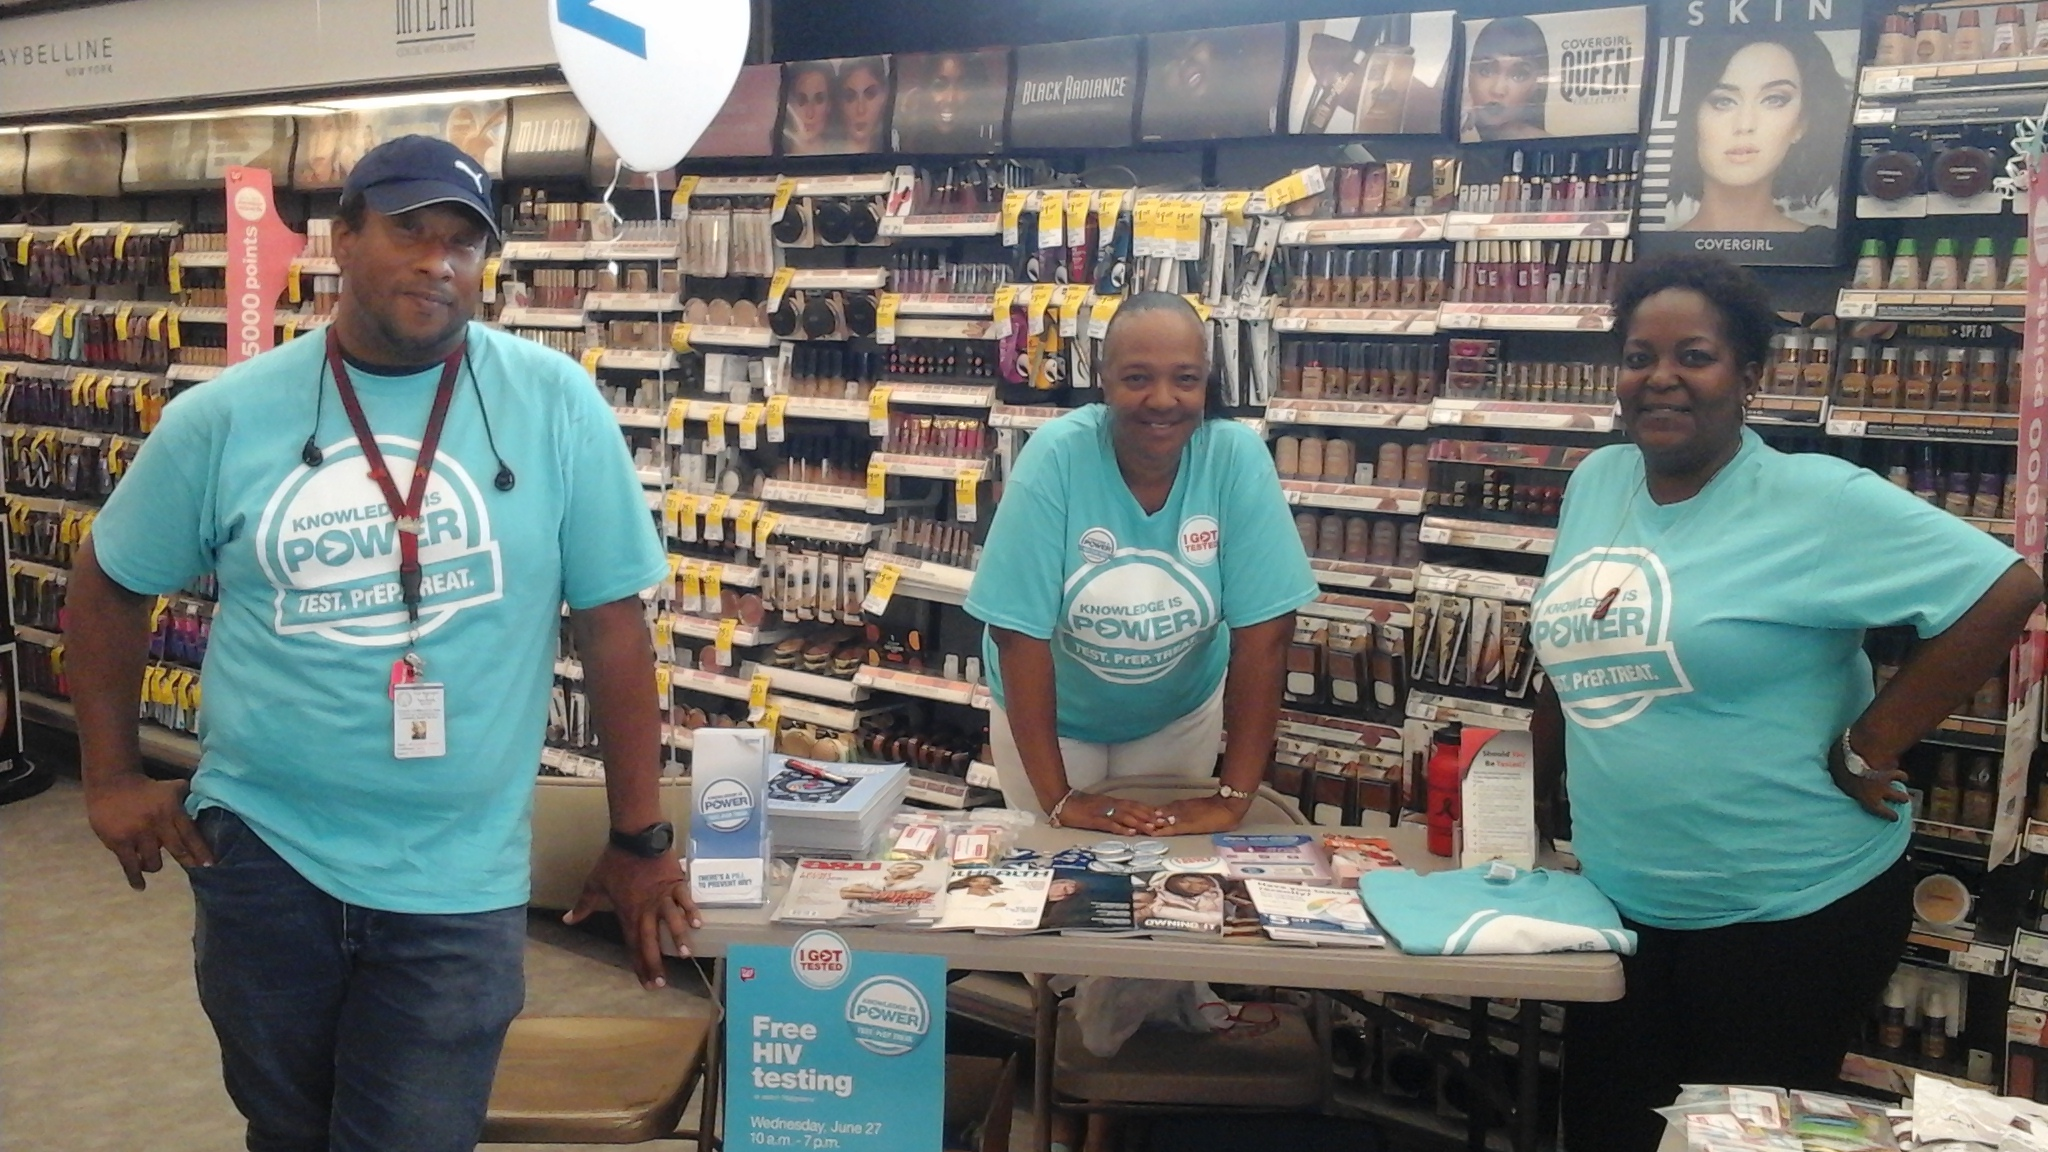 People standing at HIV information table at Walgreens